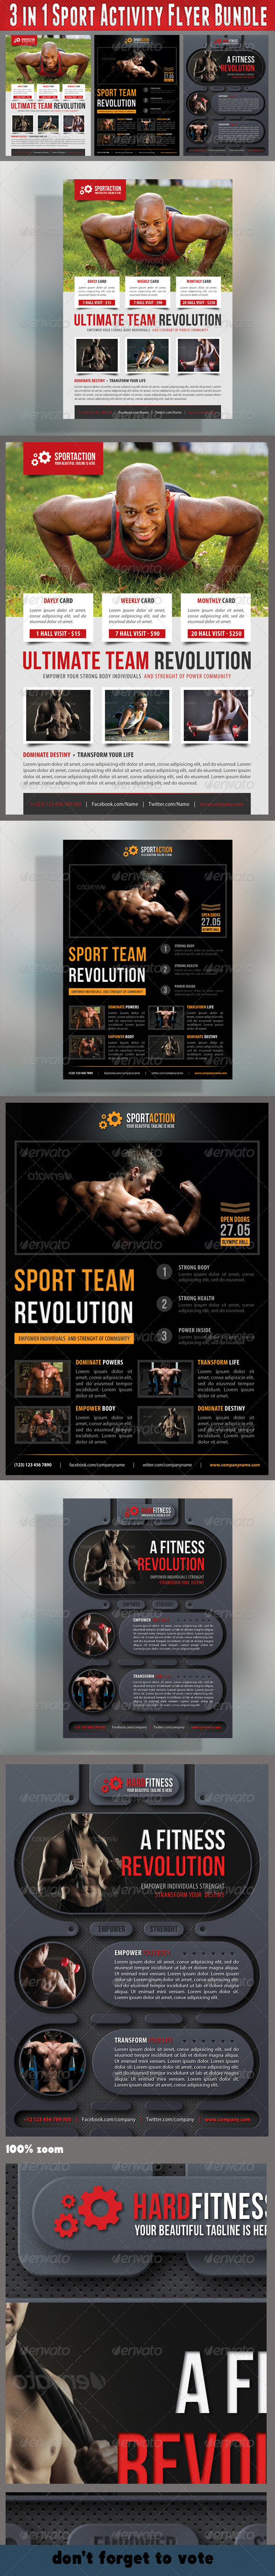 GraphicRiver 3 in 1 Sport Activity Flyer Bundle 07 7585690